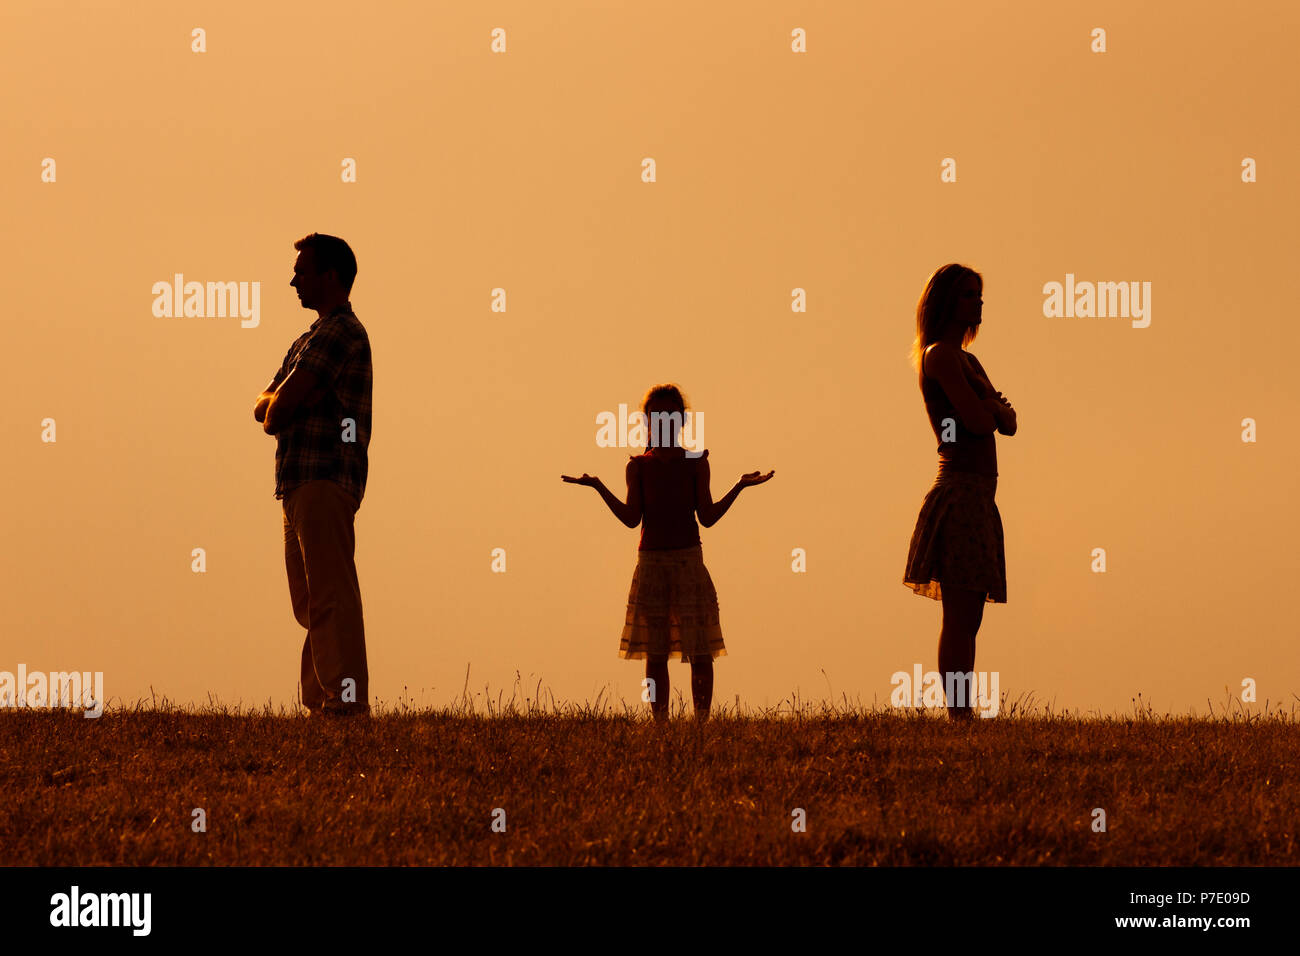 Silhouette of a angry husband and wife on each other with their confused daughter standing in the middle - Stock Image